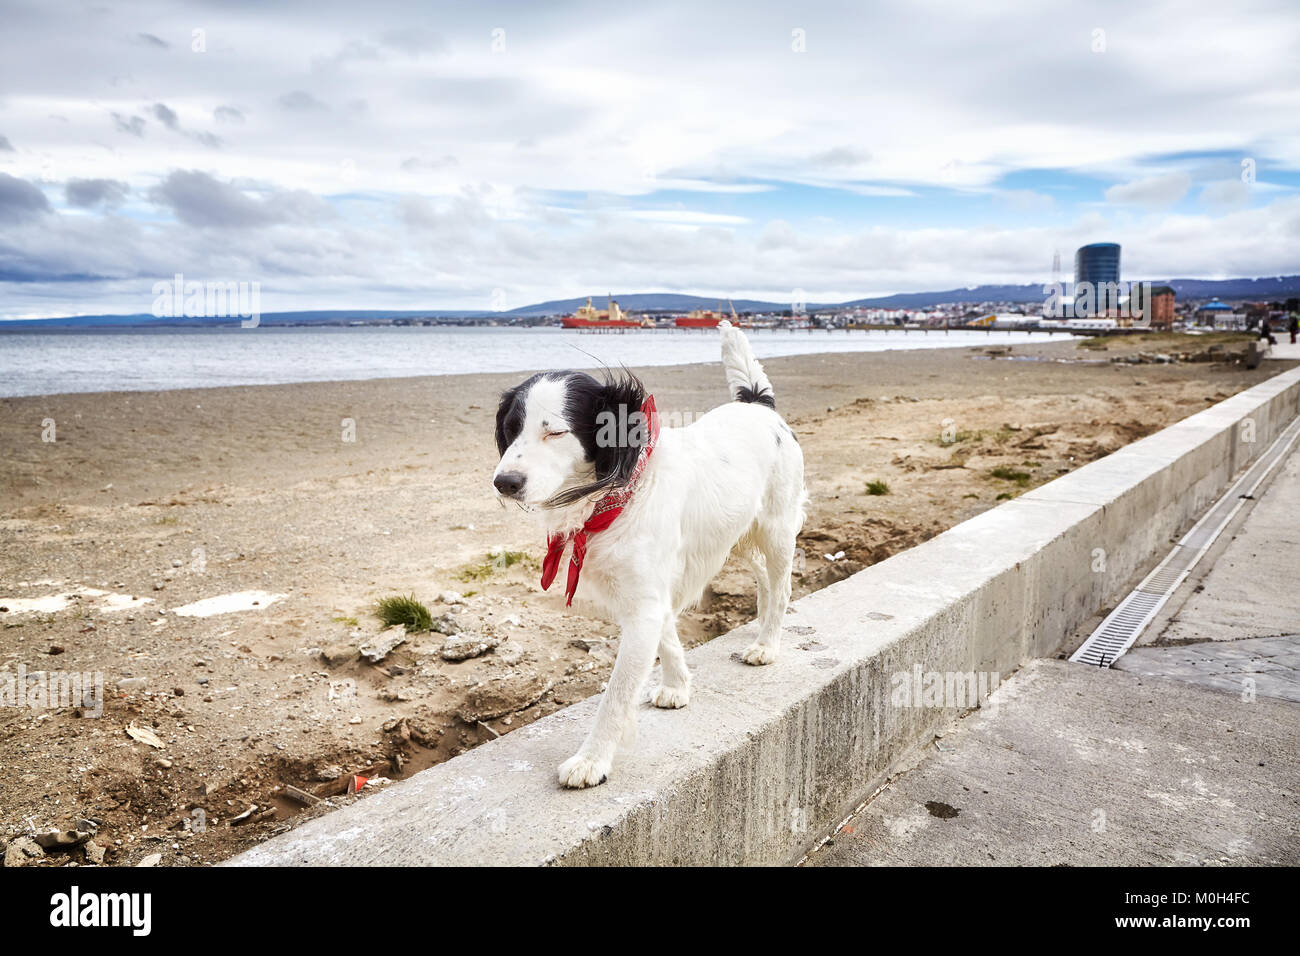 Unleashed dog walks on wall by a beach. - Stock Image